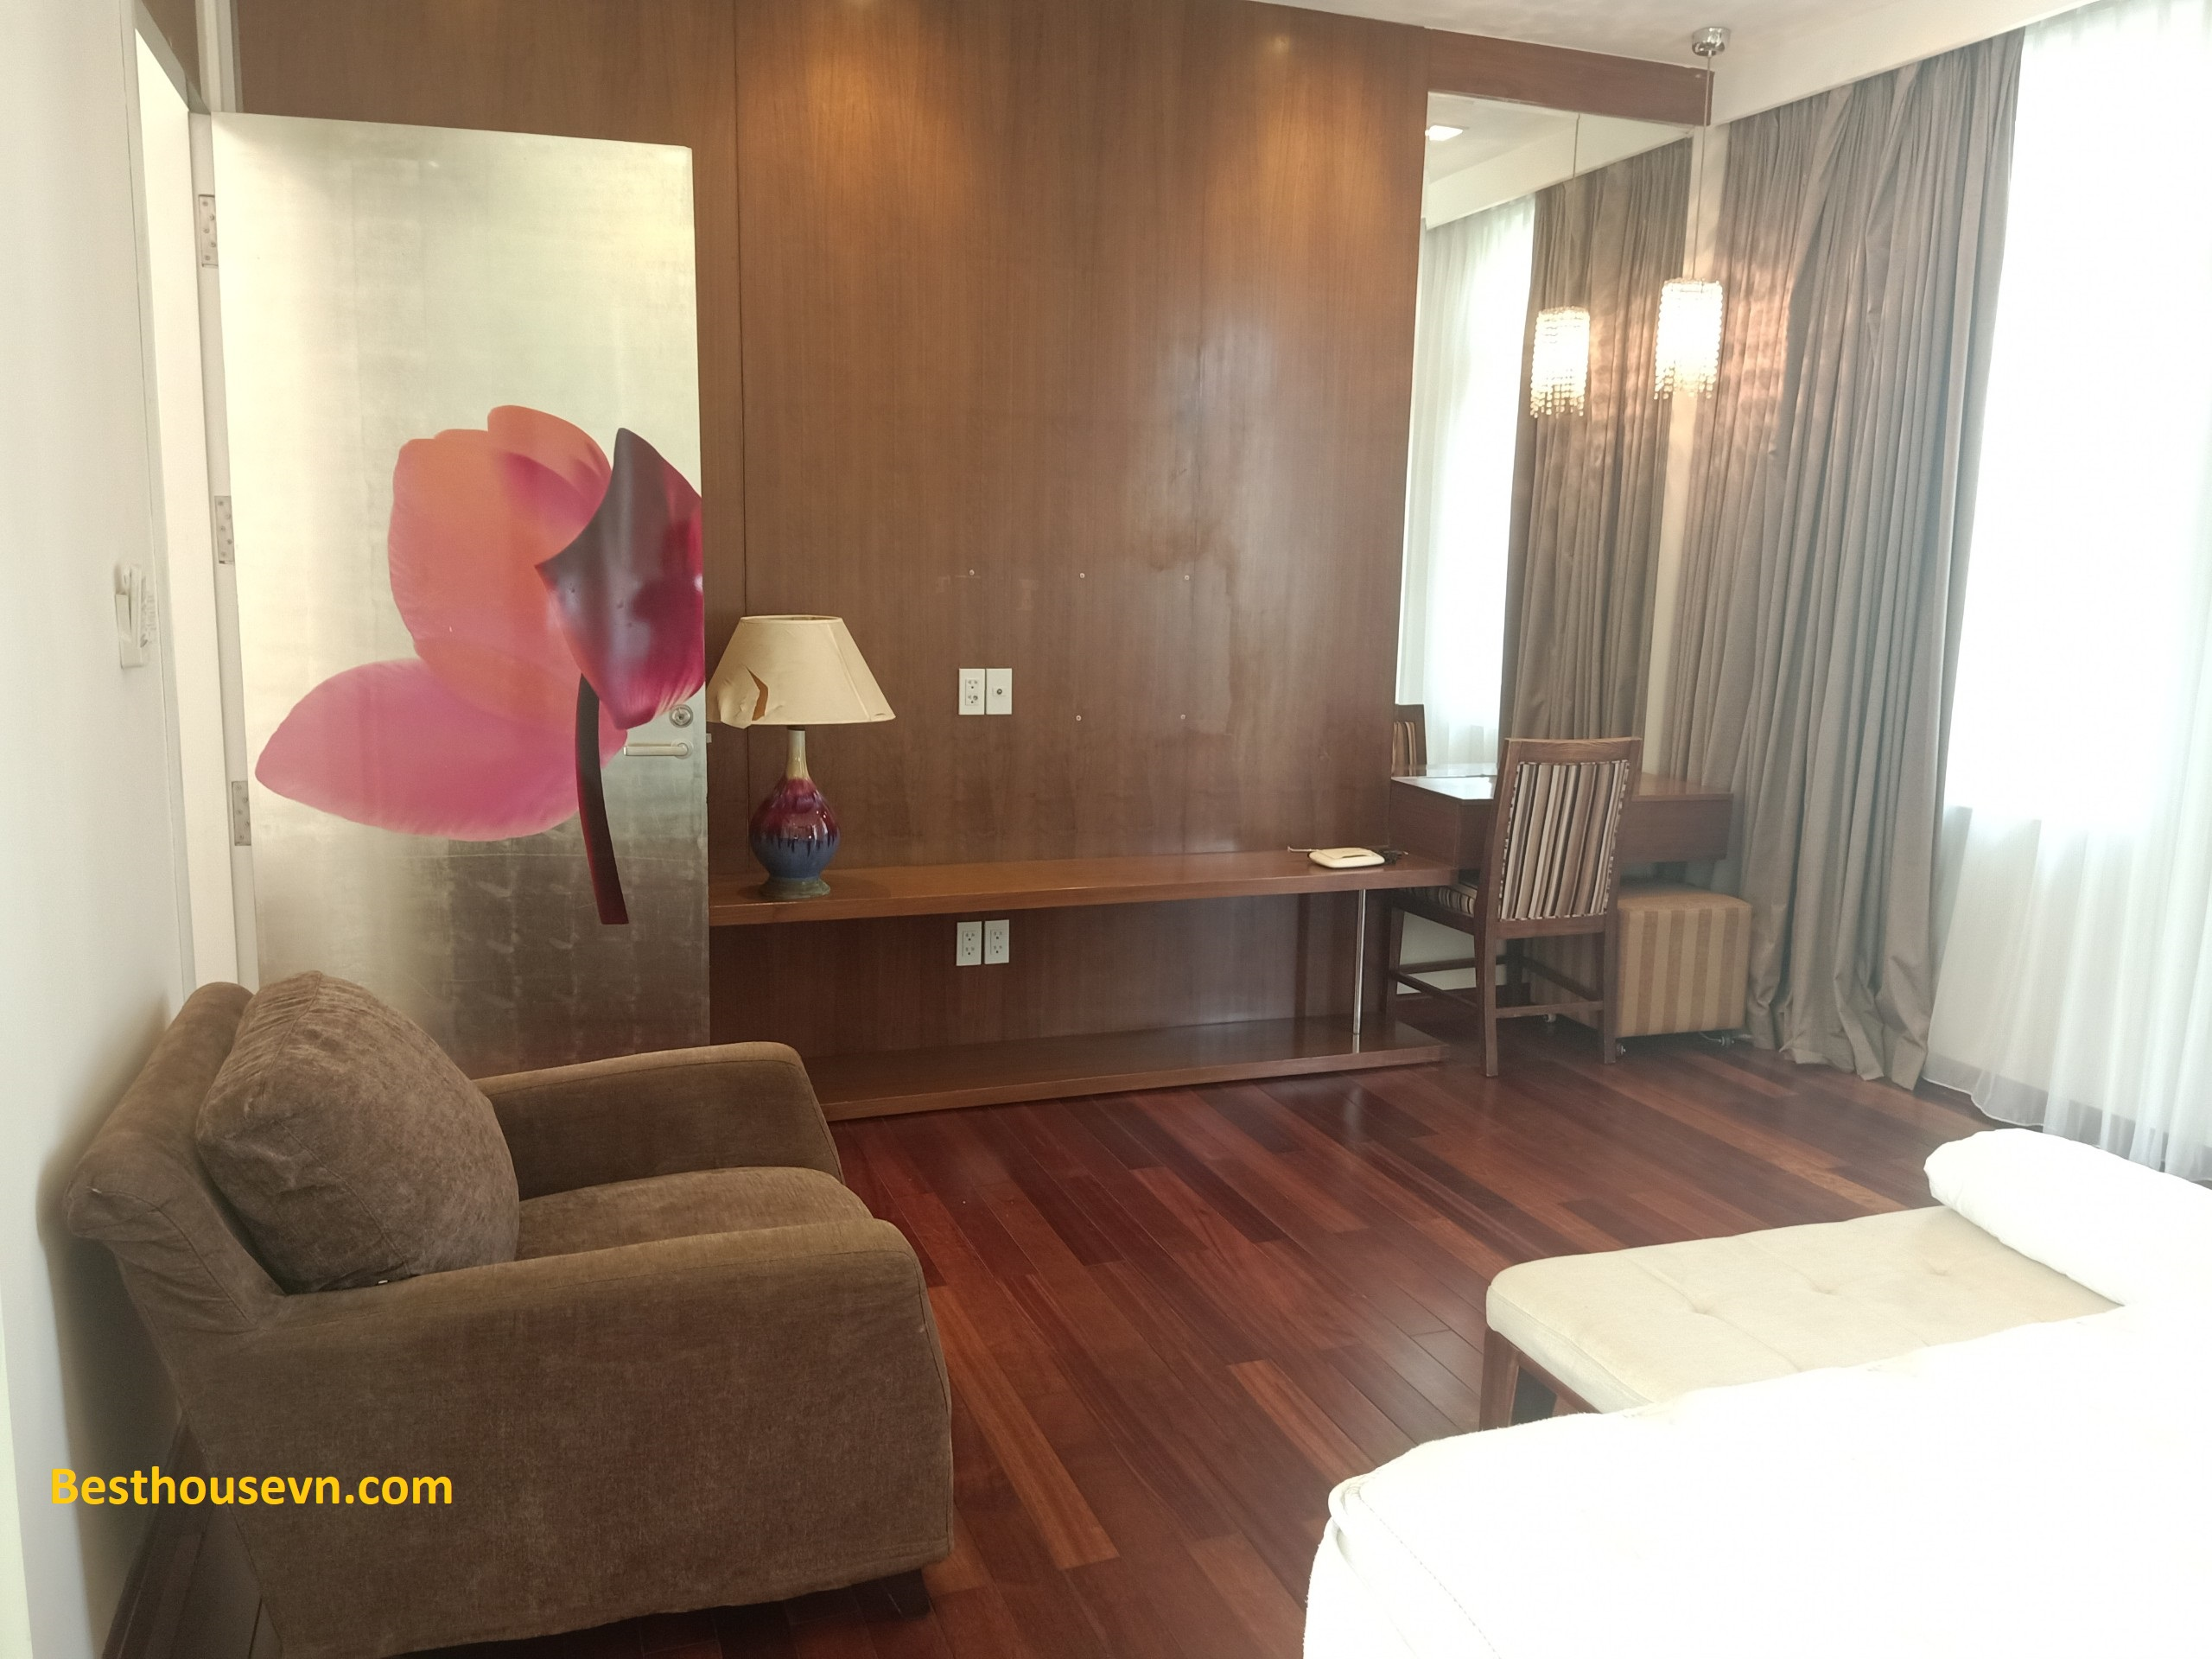 swimming-pool-Villa-for-rent-in-phu-my-hung-5